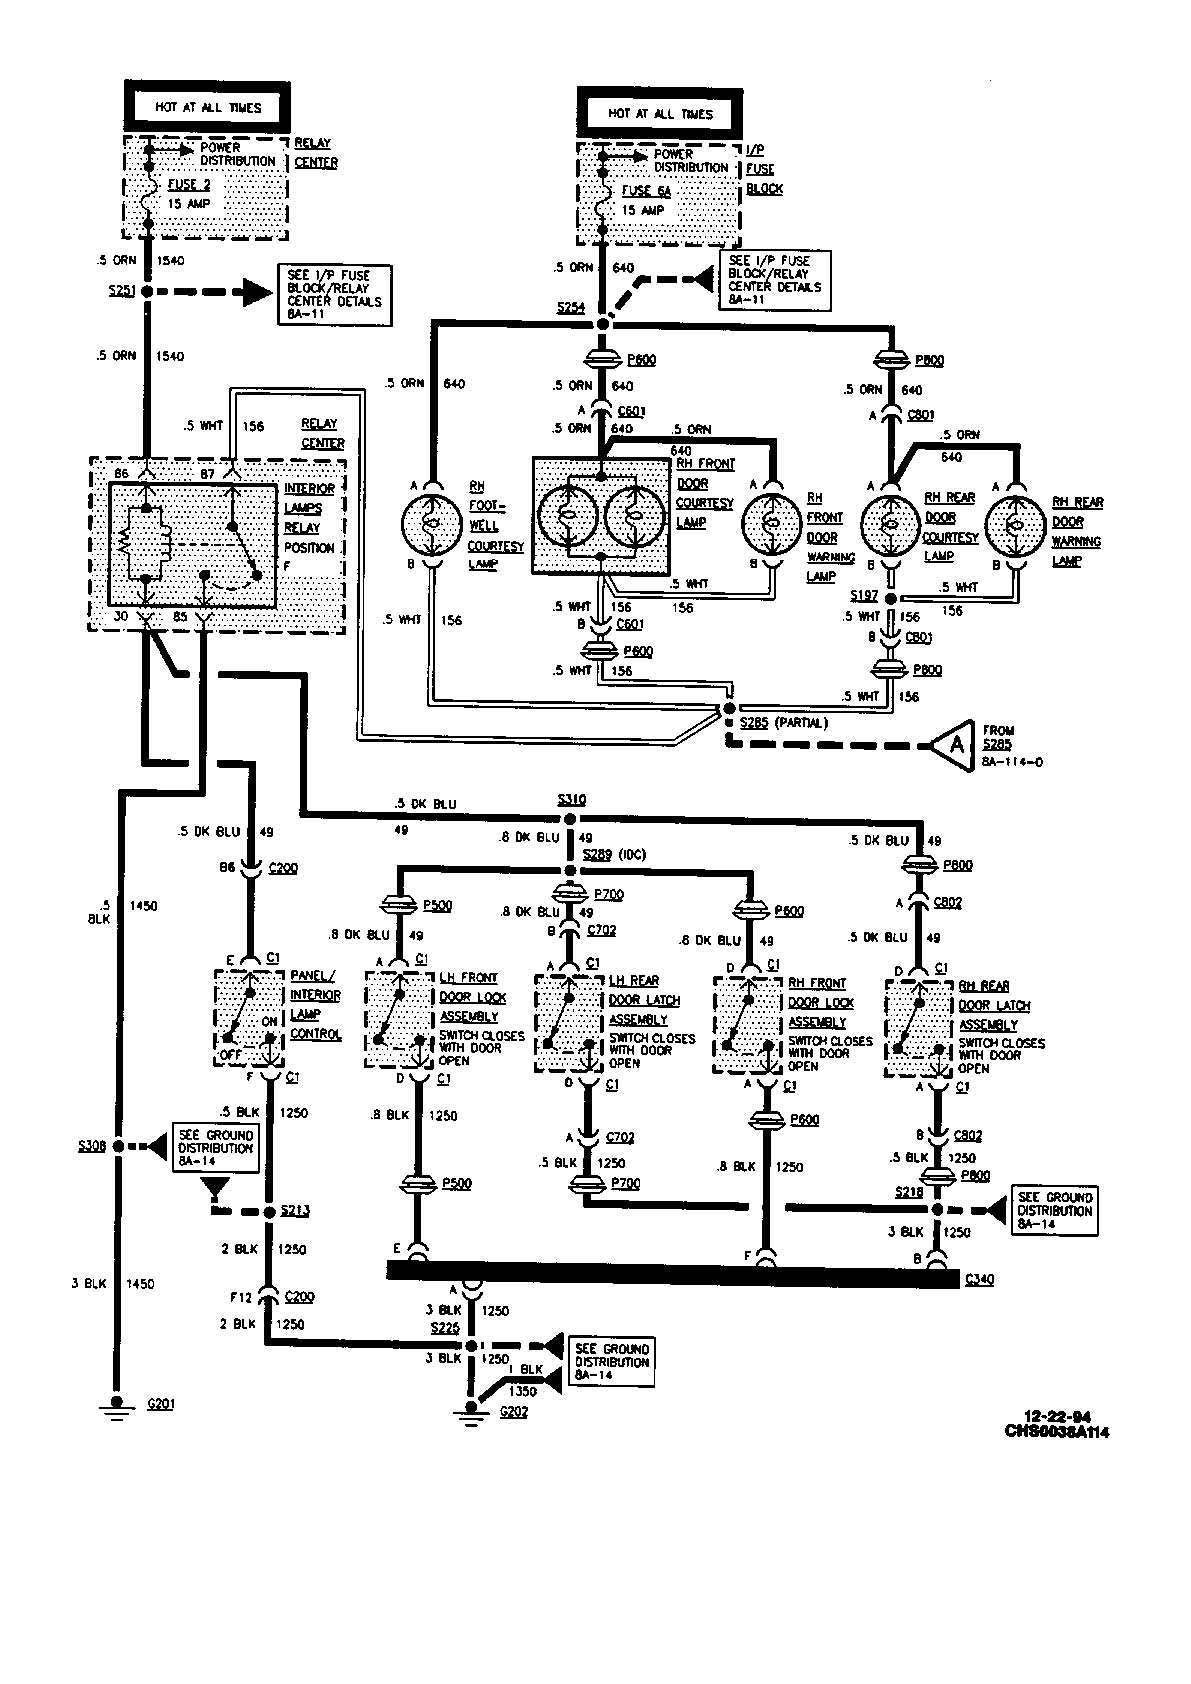 Viper 160Xv Wiring Diagram from lh6.googleusercontent.com